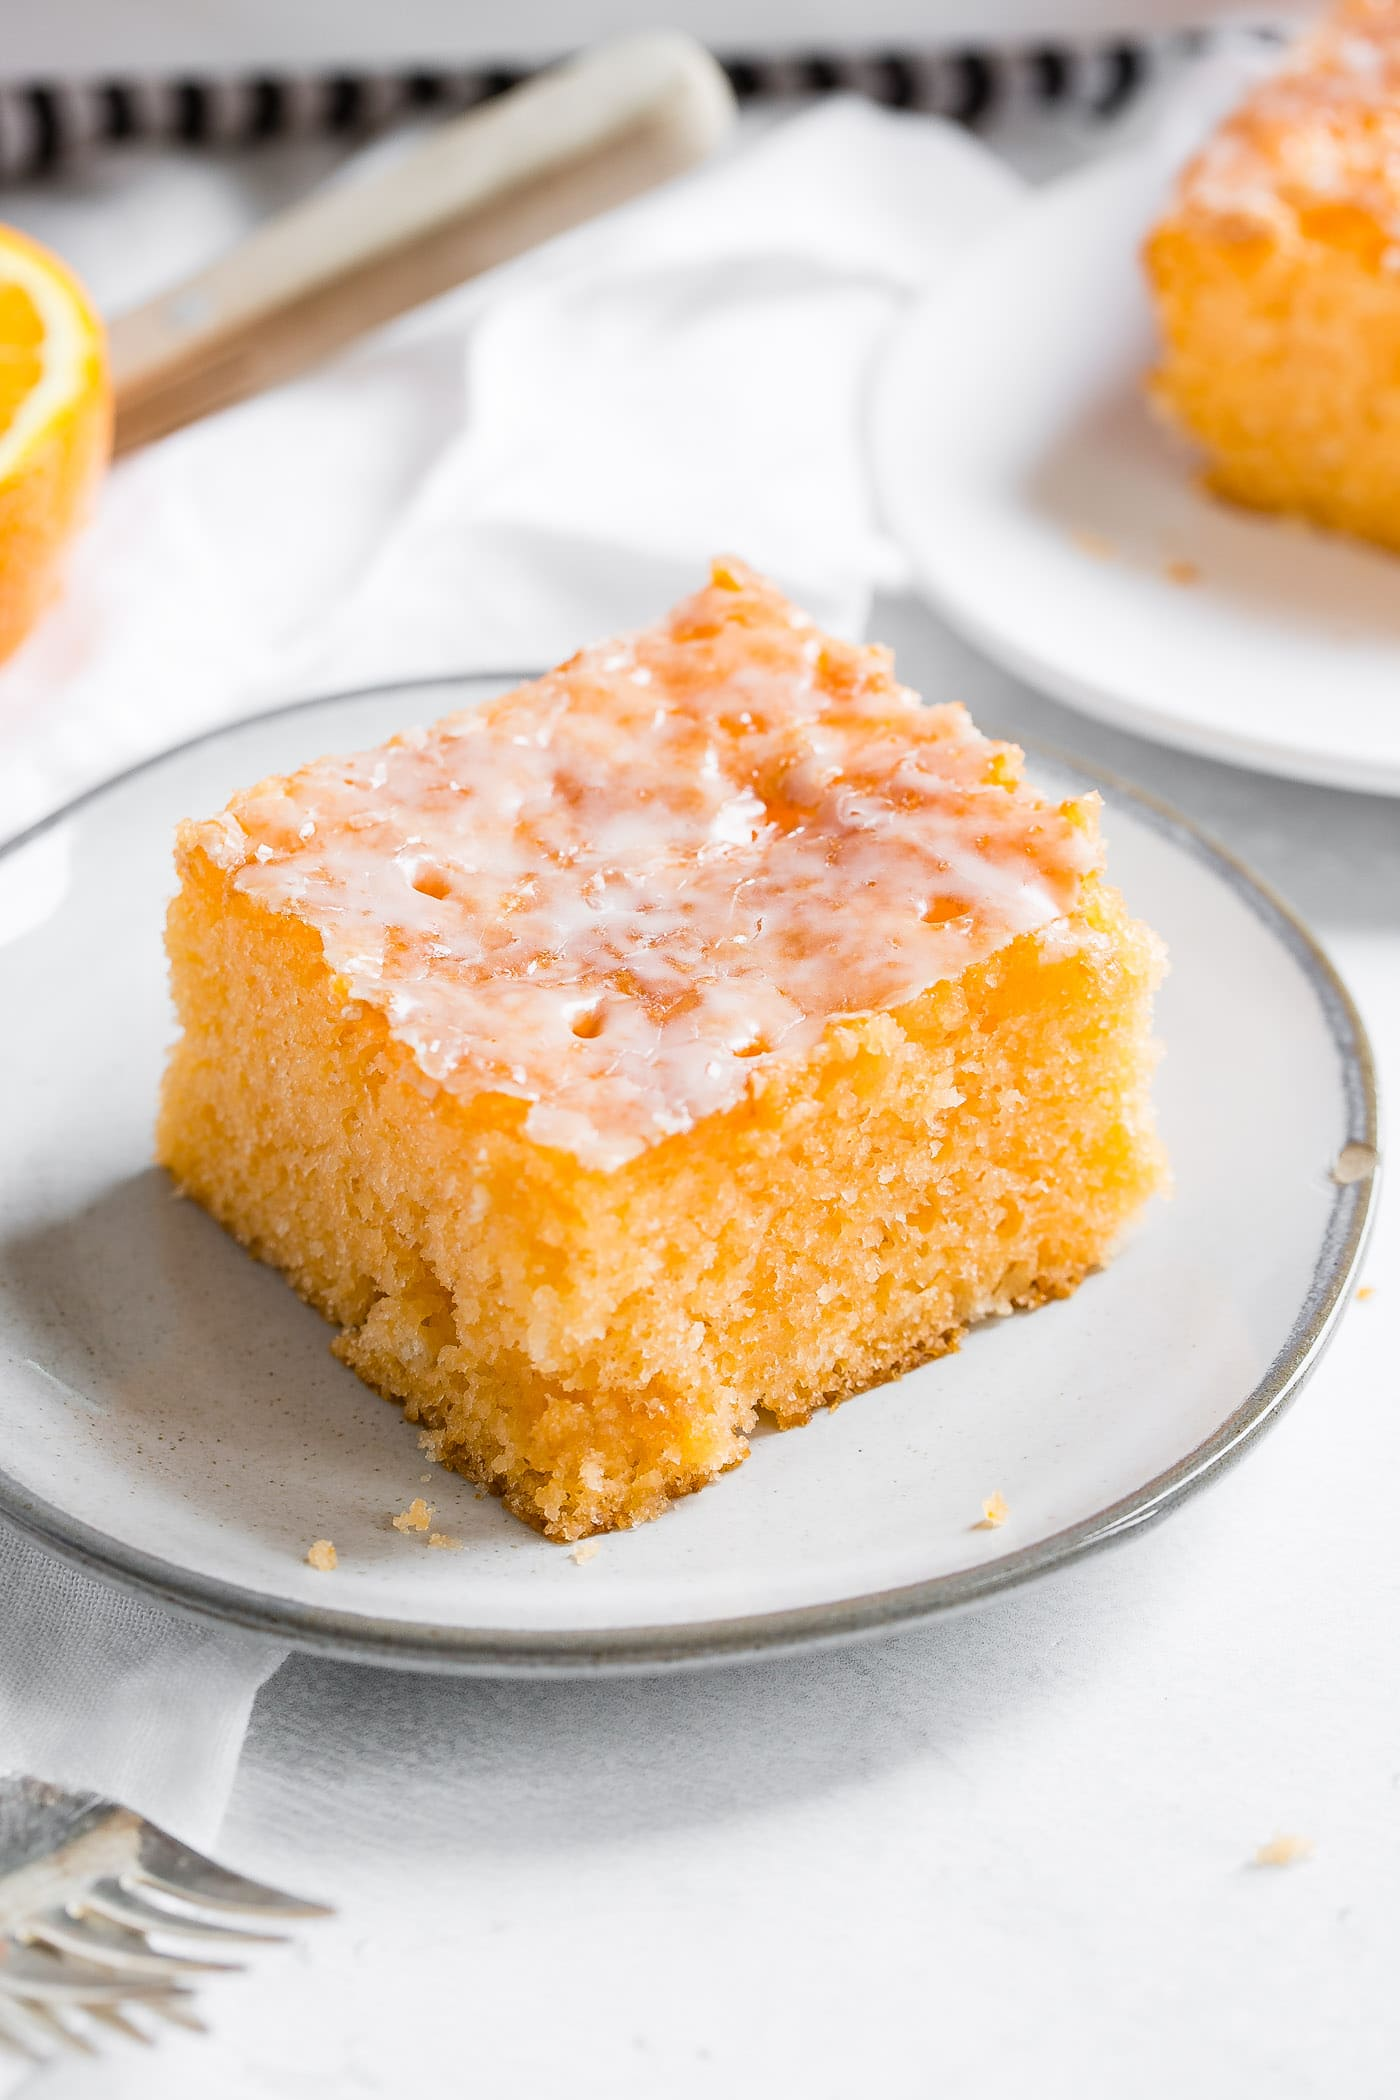 A photo of a piece of orange jello cake on a small white plate with another serving in the background and a fork in the foreground.